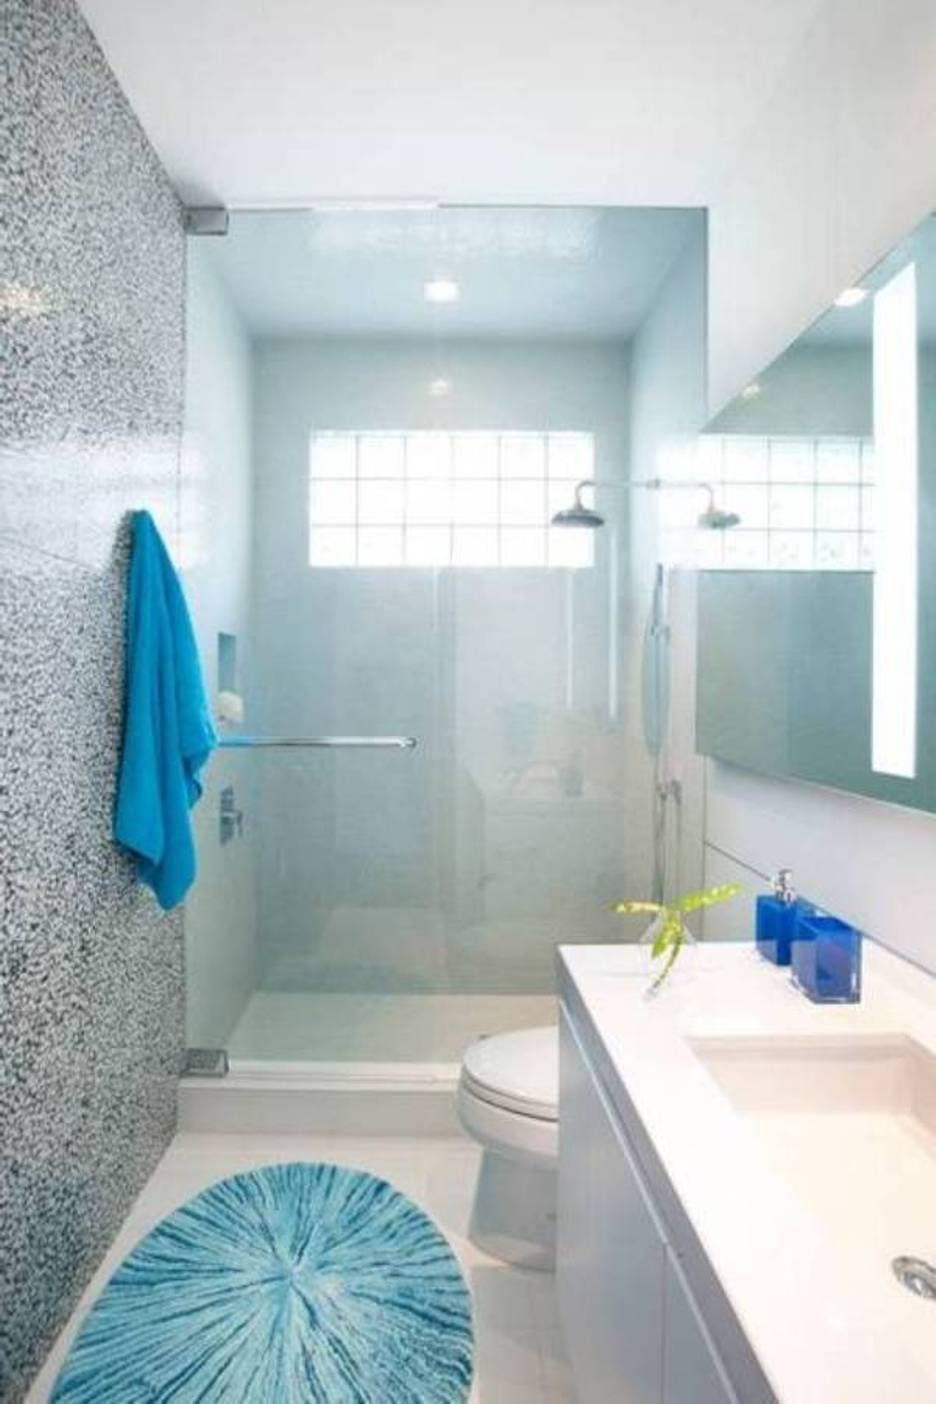 Small Bathroom Designs With Walk In Shower Glass Door And Blue Mat And Towes And Narrow Layout Narrow Bathroom Designs Simple Bathroom Small Bathroom Layout